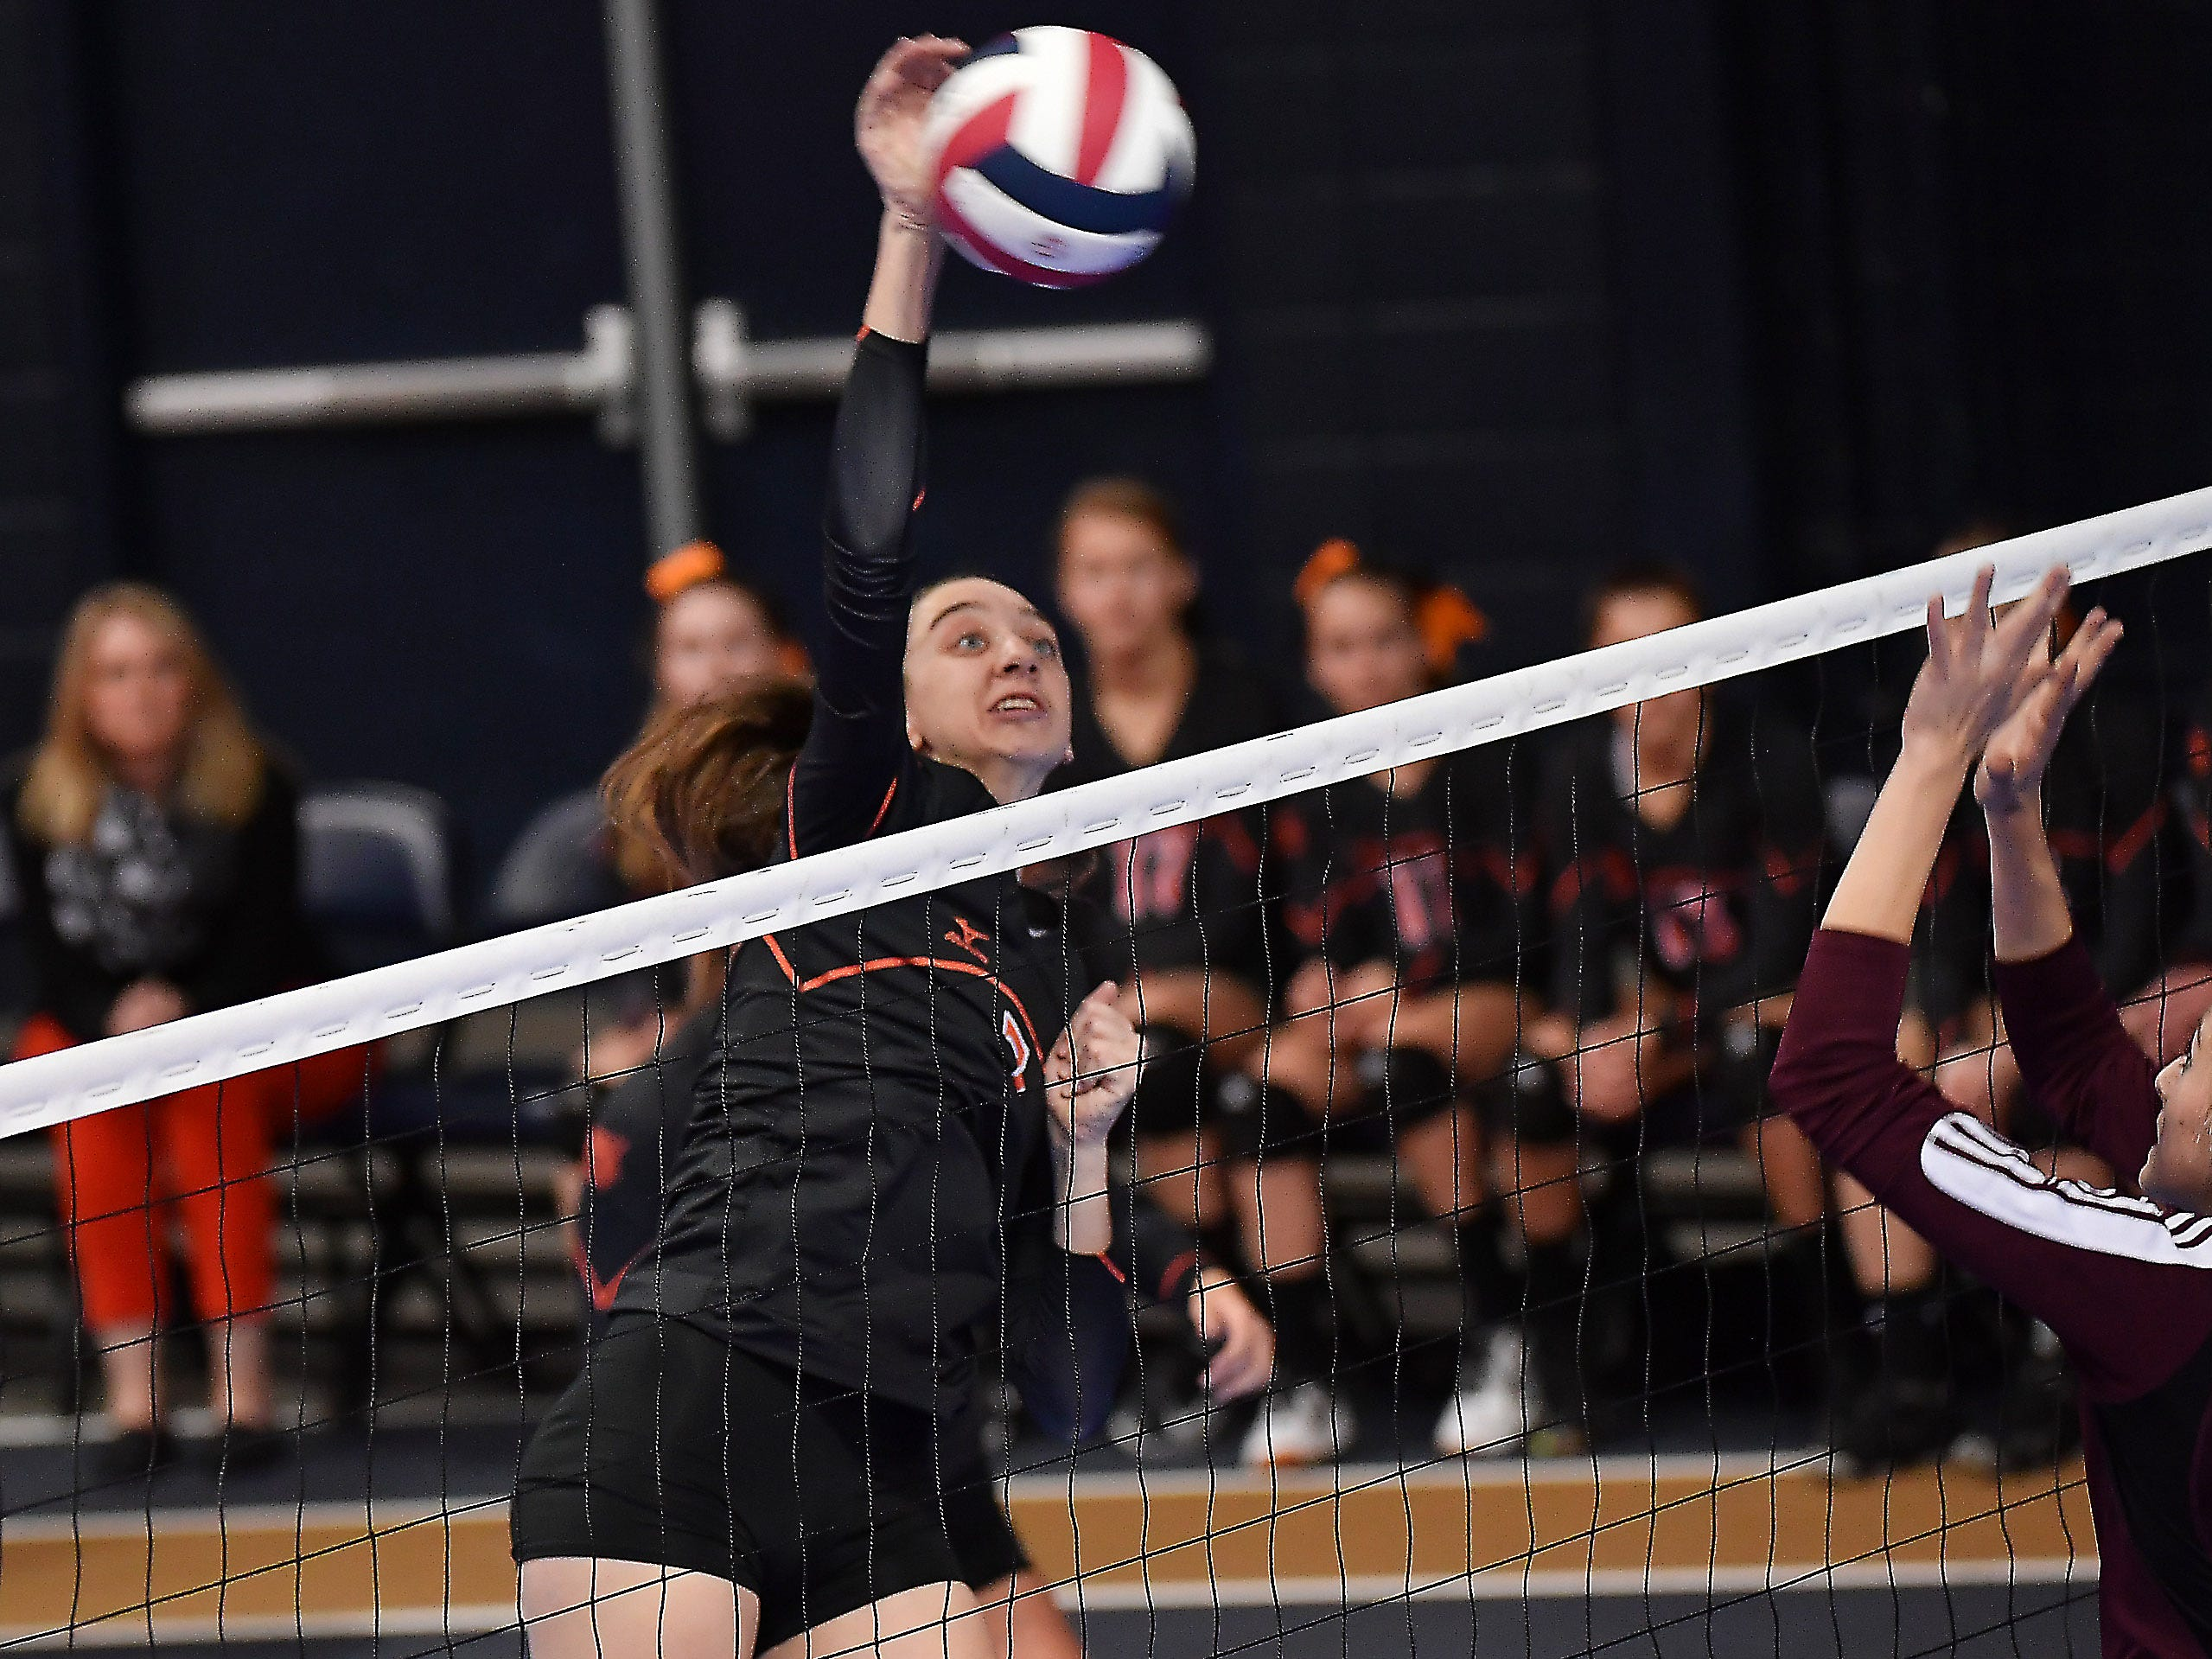 Brenna Osksa of Plentywood spikes the ball against Manhattan Christian at the All-Class State Volleyball Tournament at the Brick Breeden Fieldhouse in Bozeman.